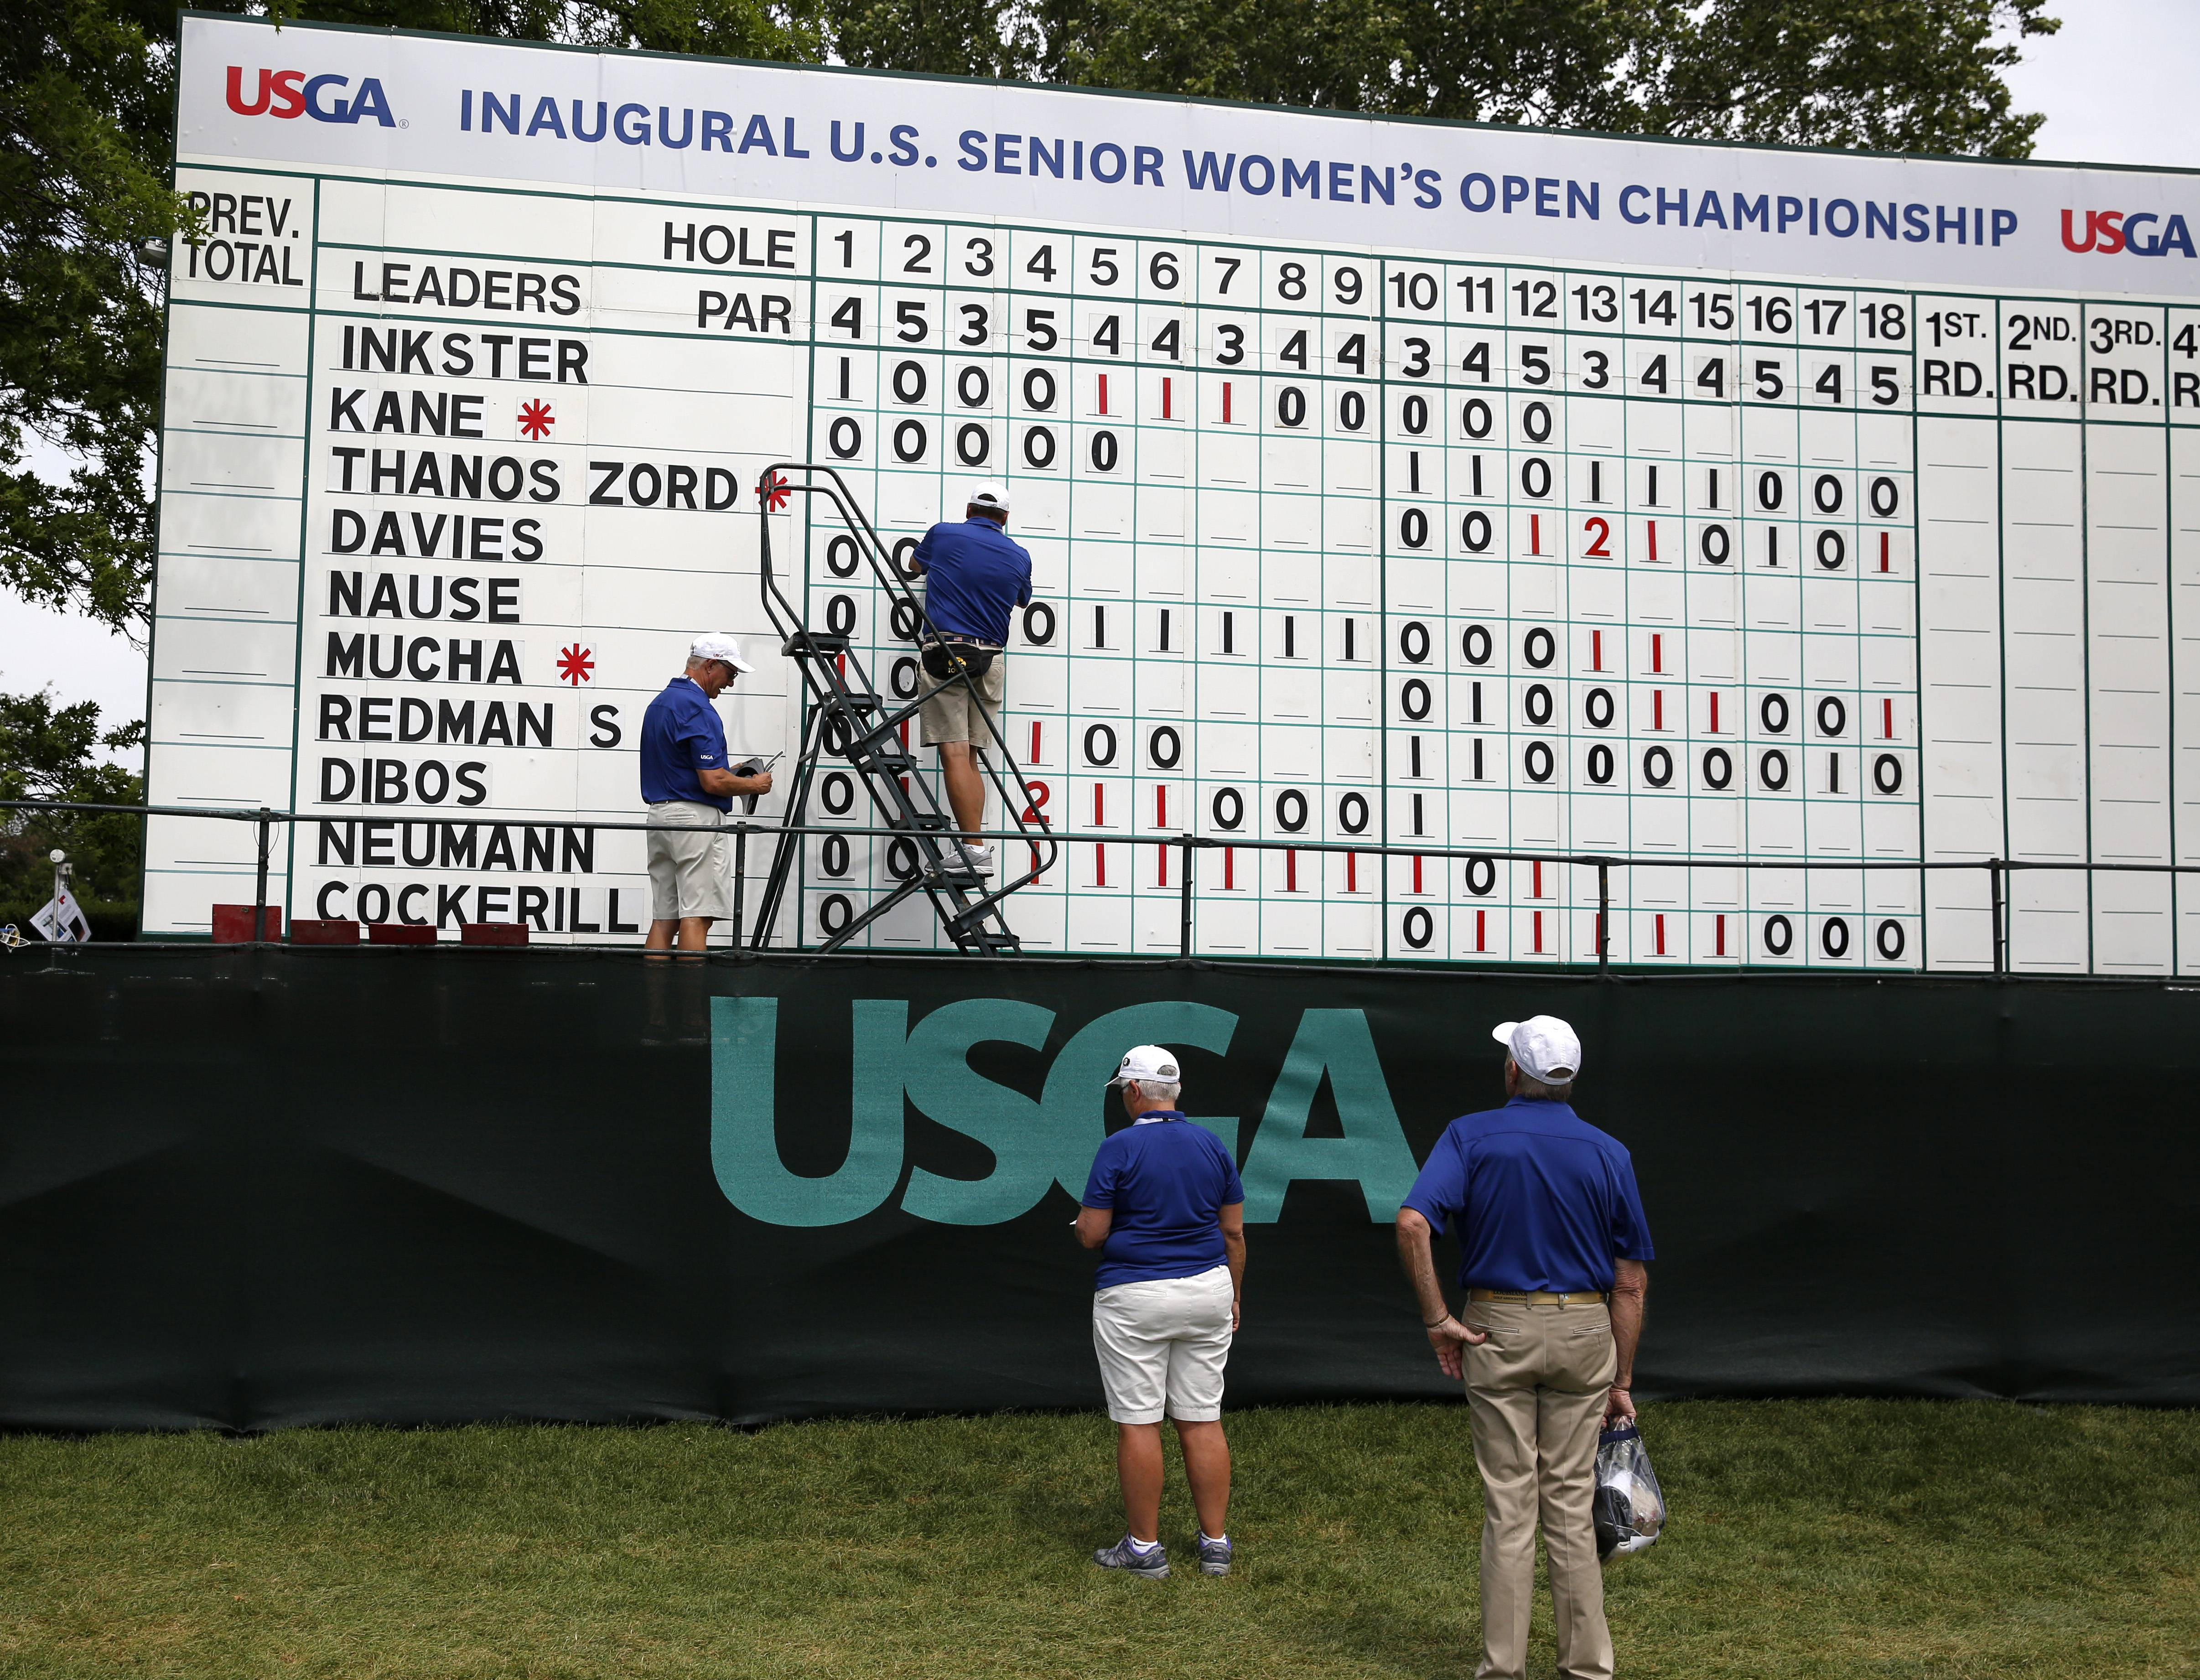 Volunteers at the Chicago Golf Club in Wheaton monitor the leaderboard during Thursday's opening round of the first U.S. Senior Women's Open Championship.